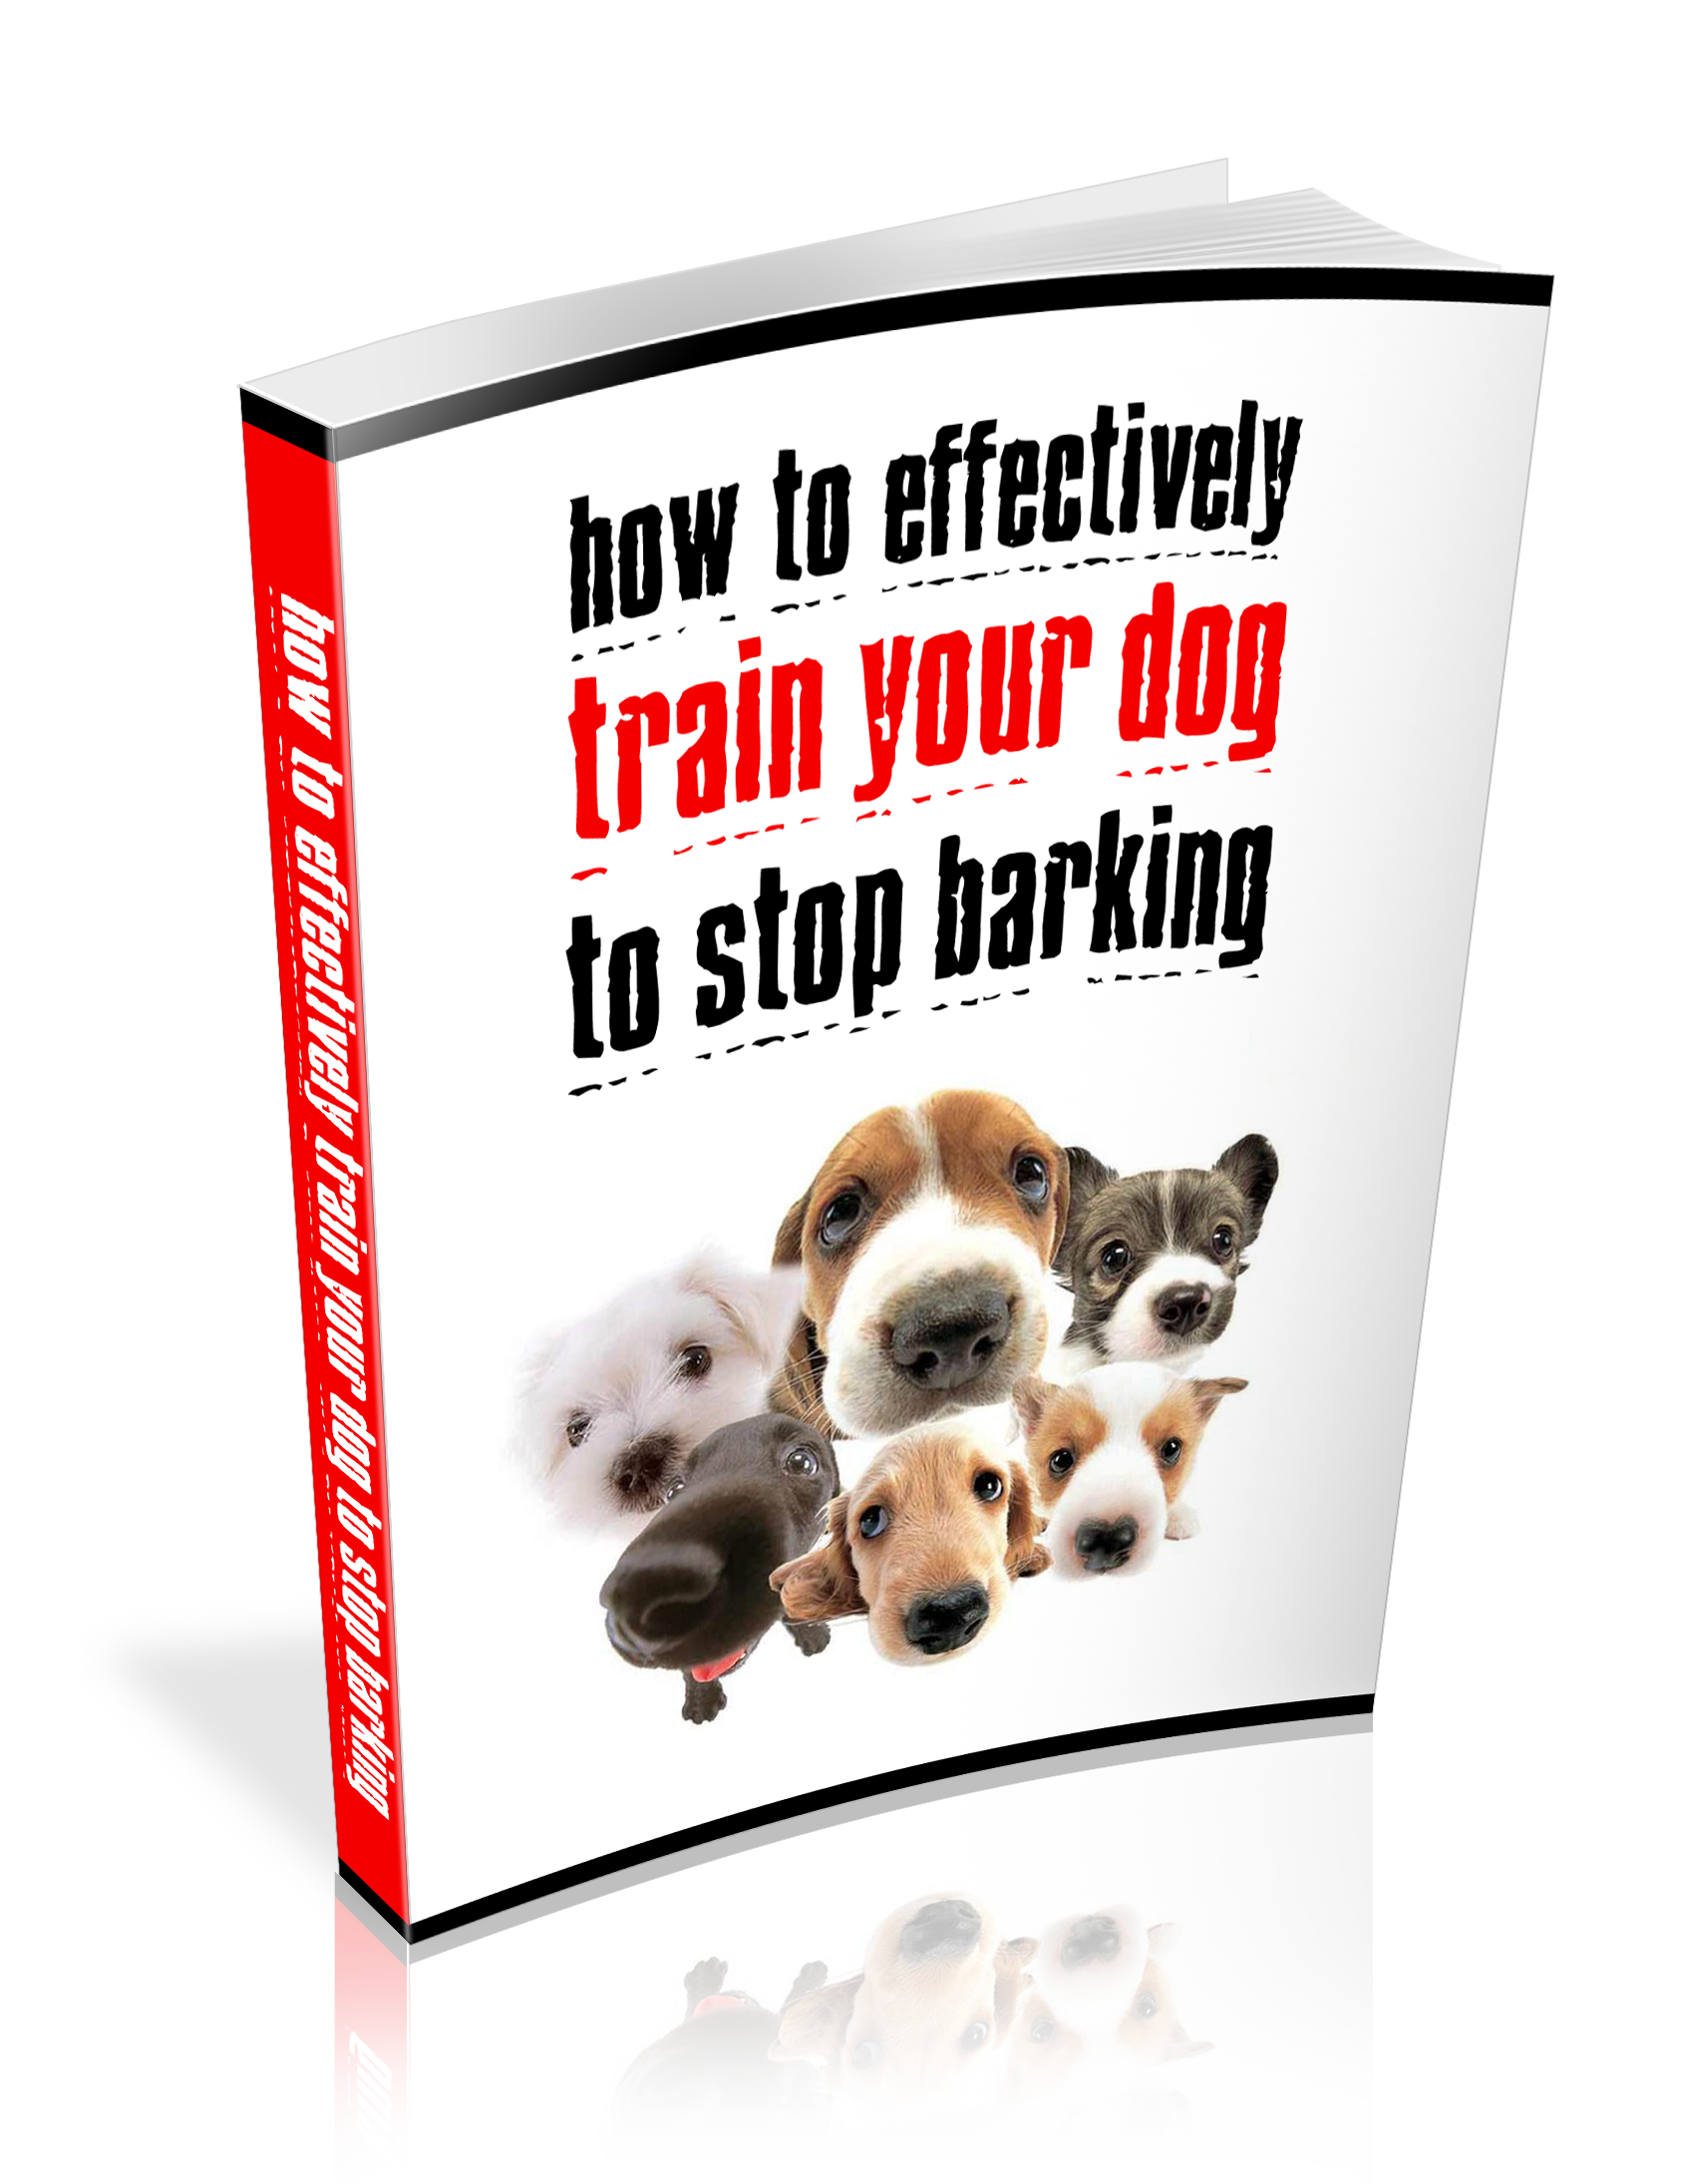 Bark Control Pro Automatic Bark Collar #barkcontrolpro